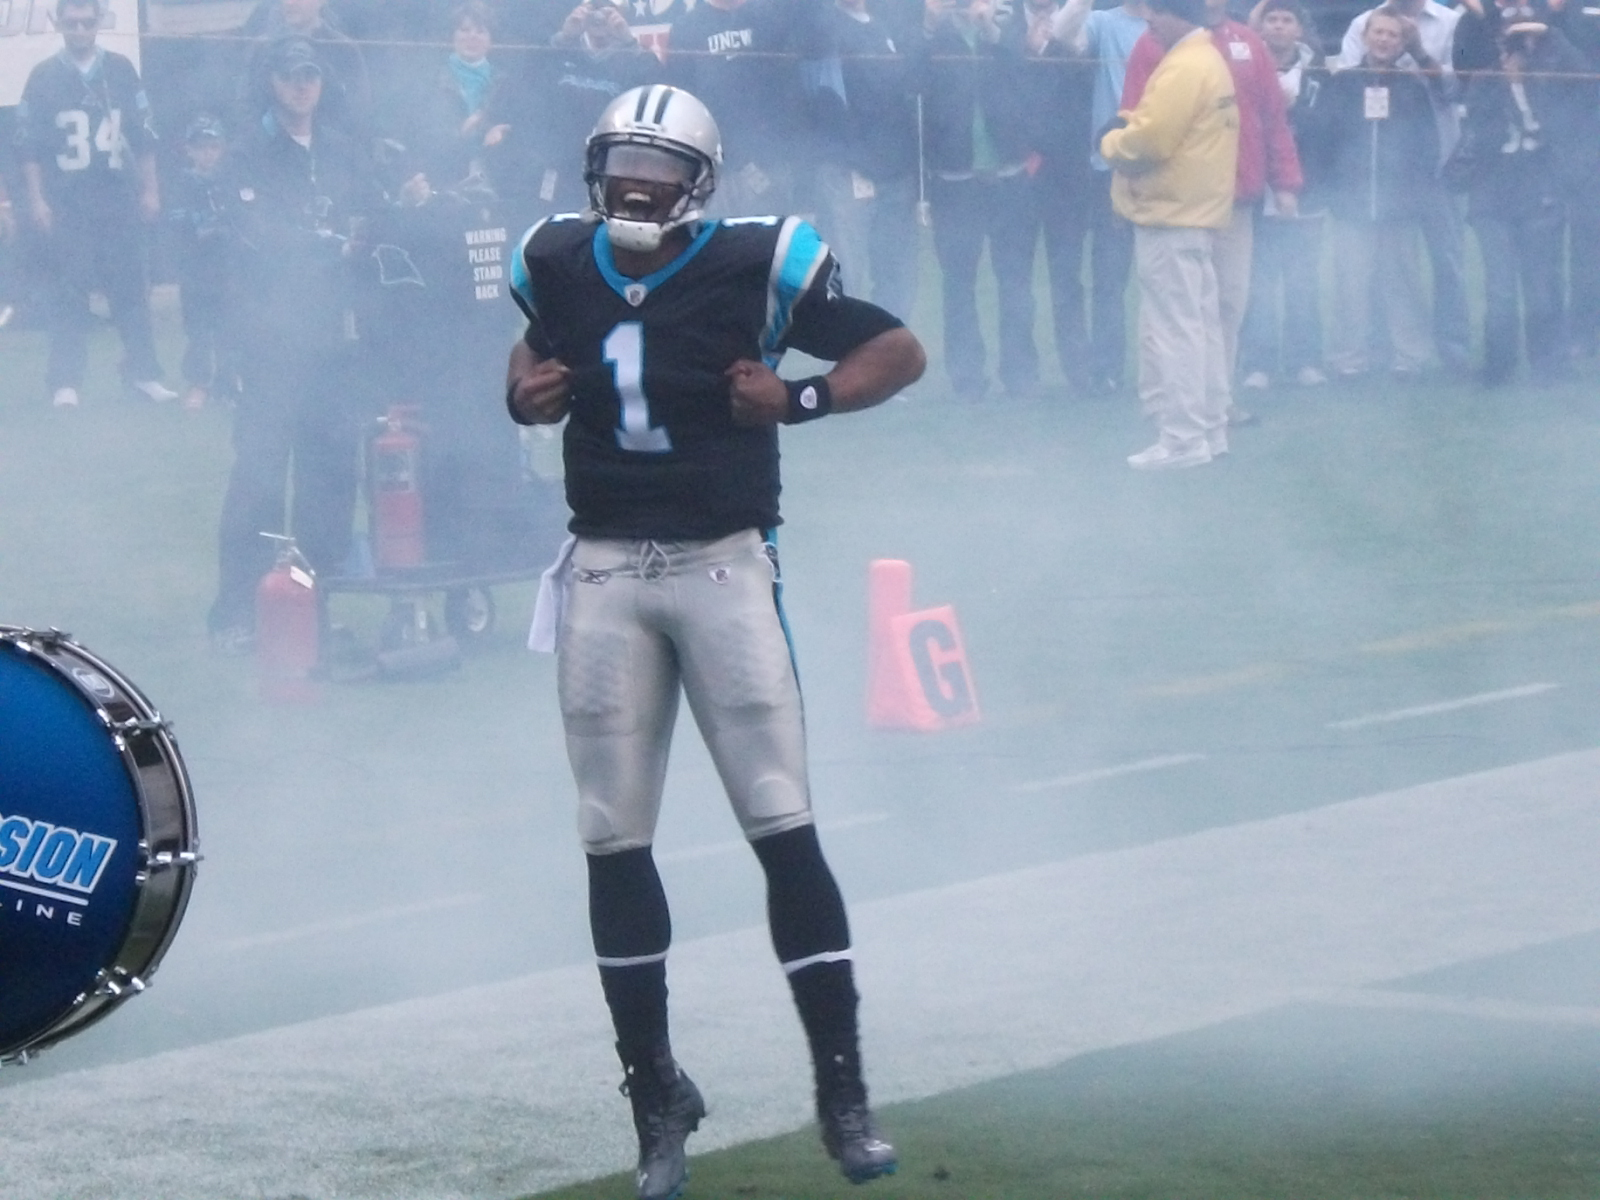 http://upload.wikimedia.org/wikipedia/commons/e/e5/Cam_Newton_during_the_2011_NFL_season.jpg